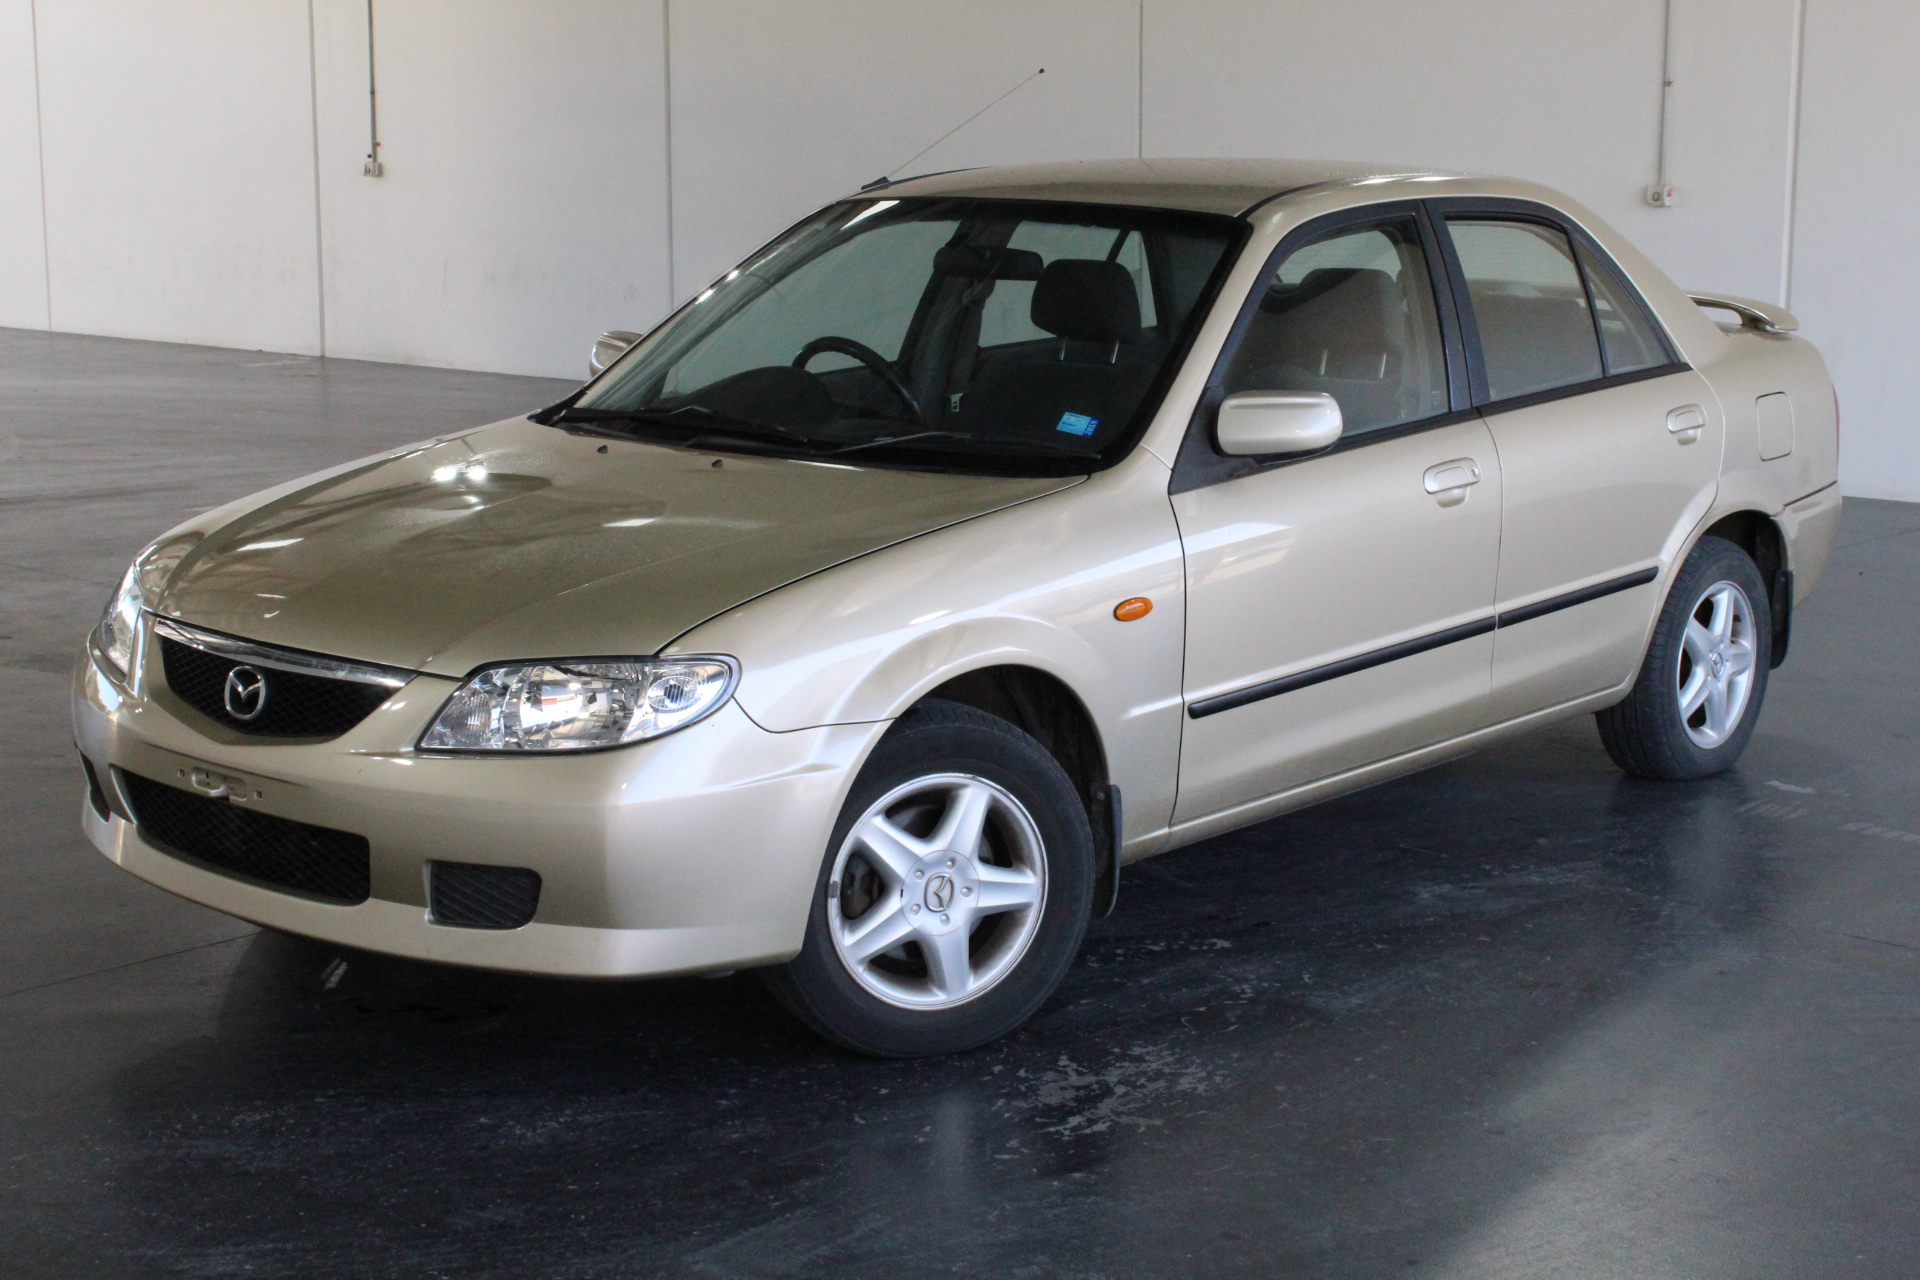 2001 Mazda 323 Protege BJ Automatic Sedan